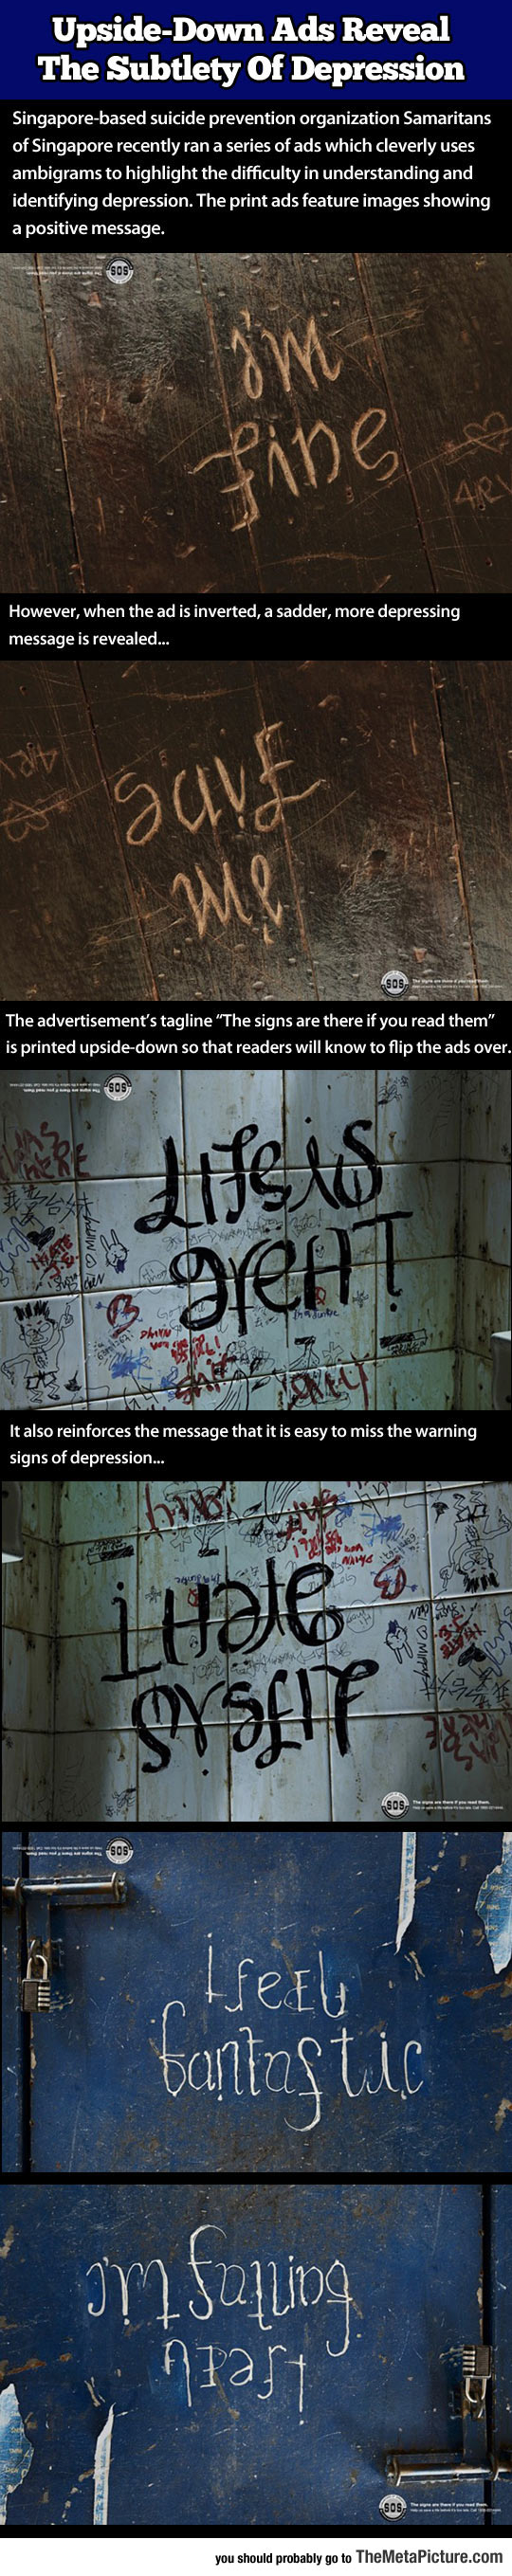 Upside-Down Message